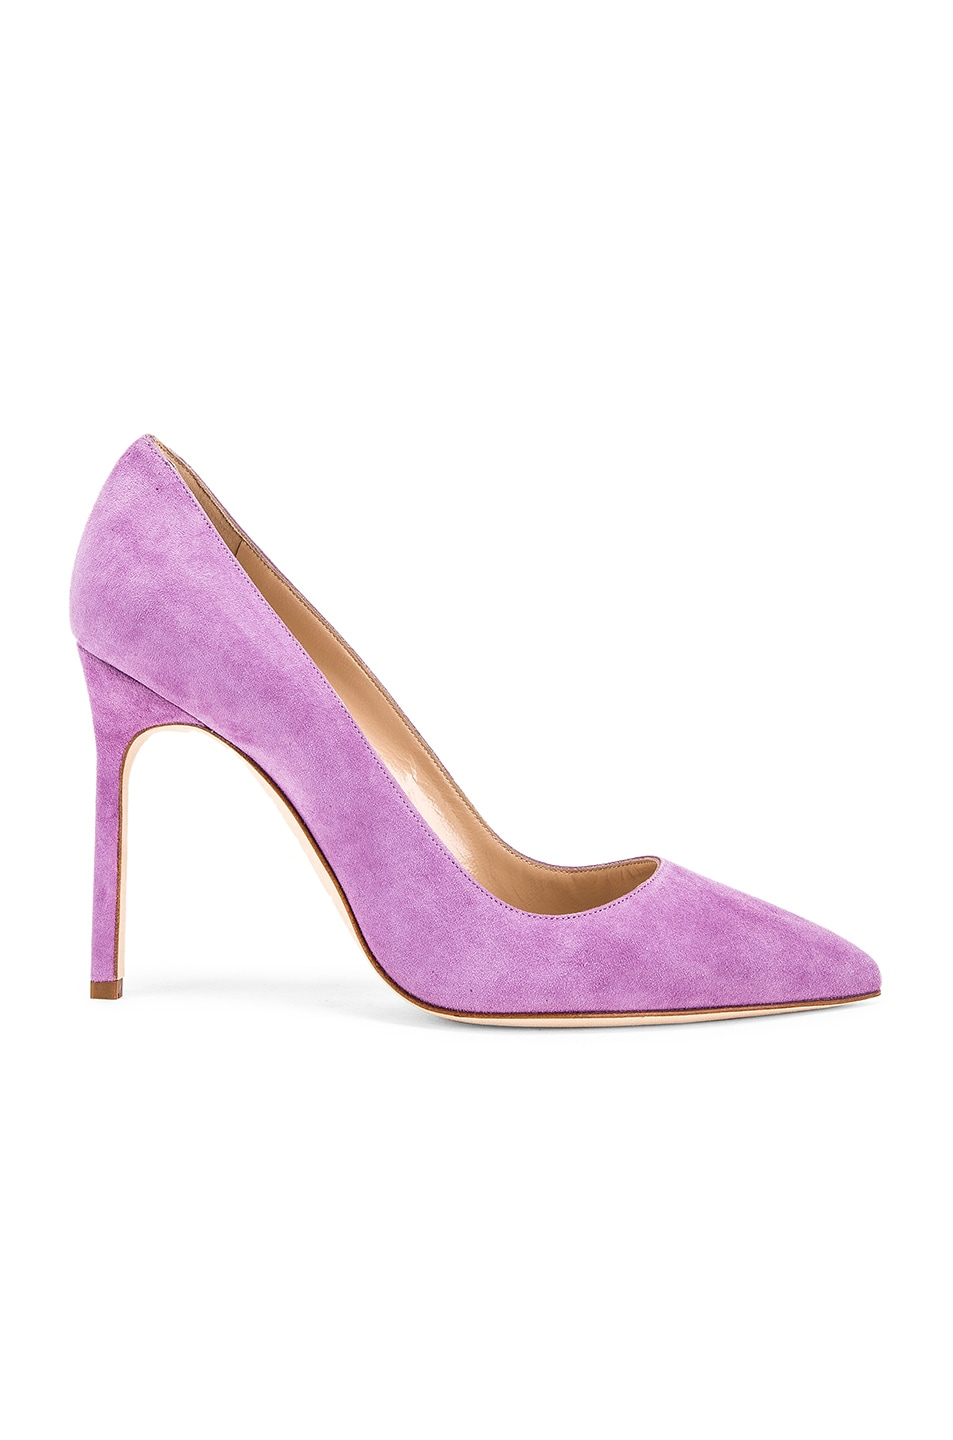 Image 1 of Manolo Blahnik BB 105 Pump in Lilac Purple Suede